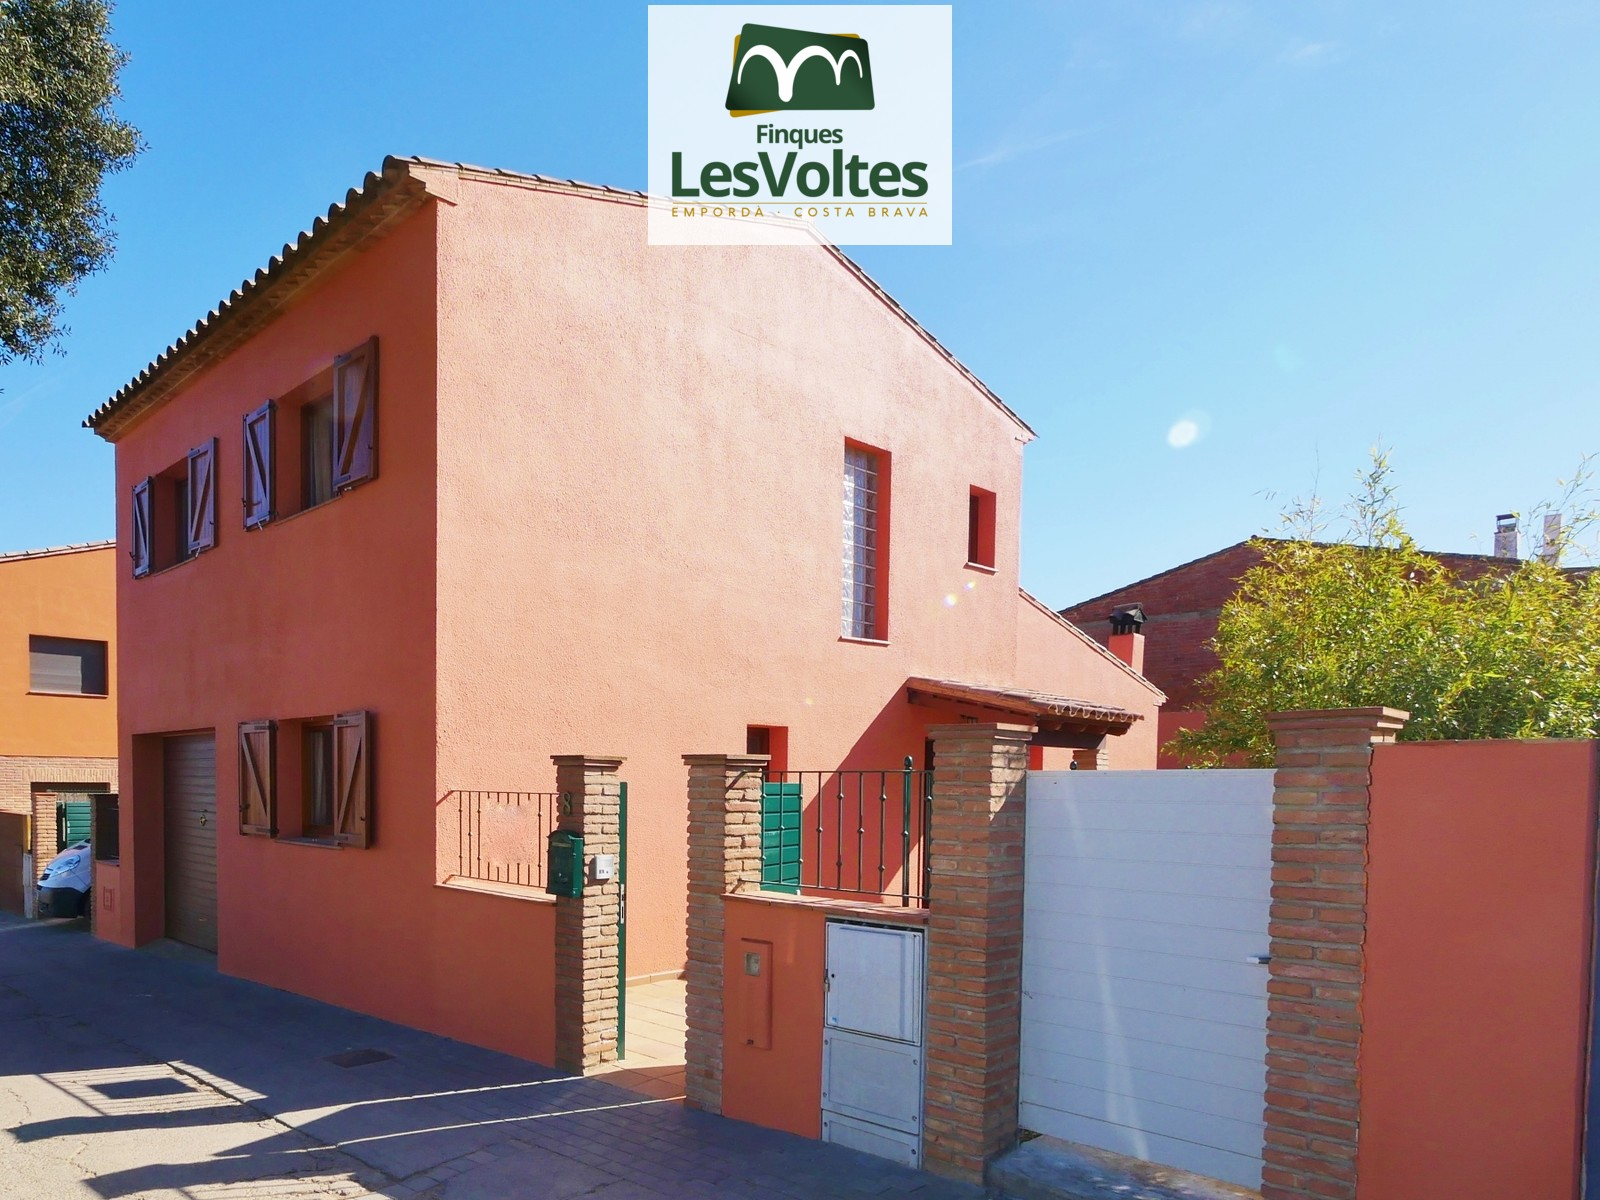 Detached house with garden and garage for sale in Llofriu. Quiet residential area.